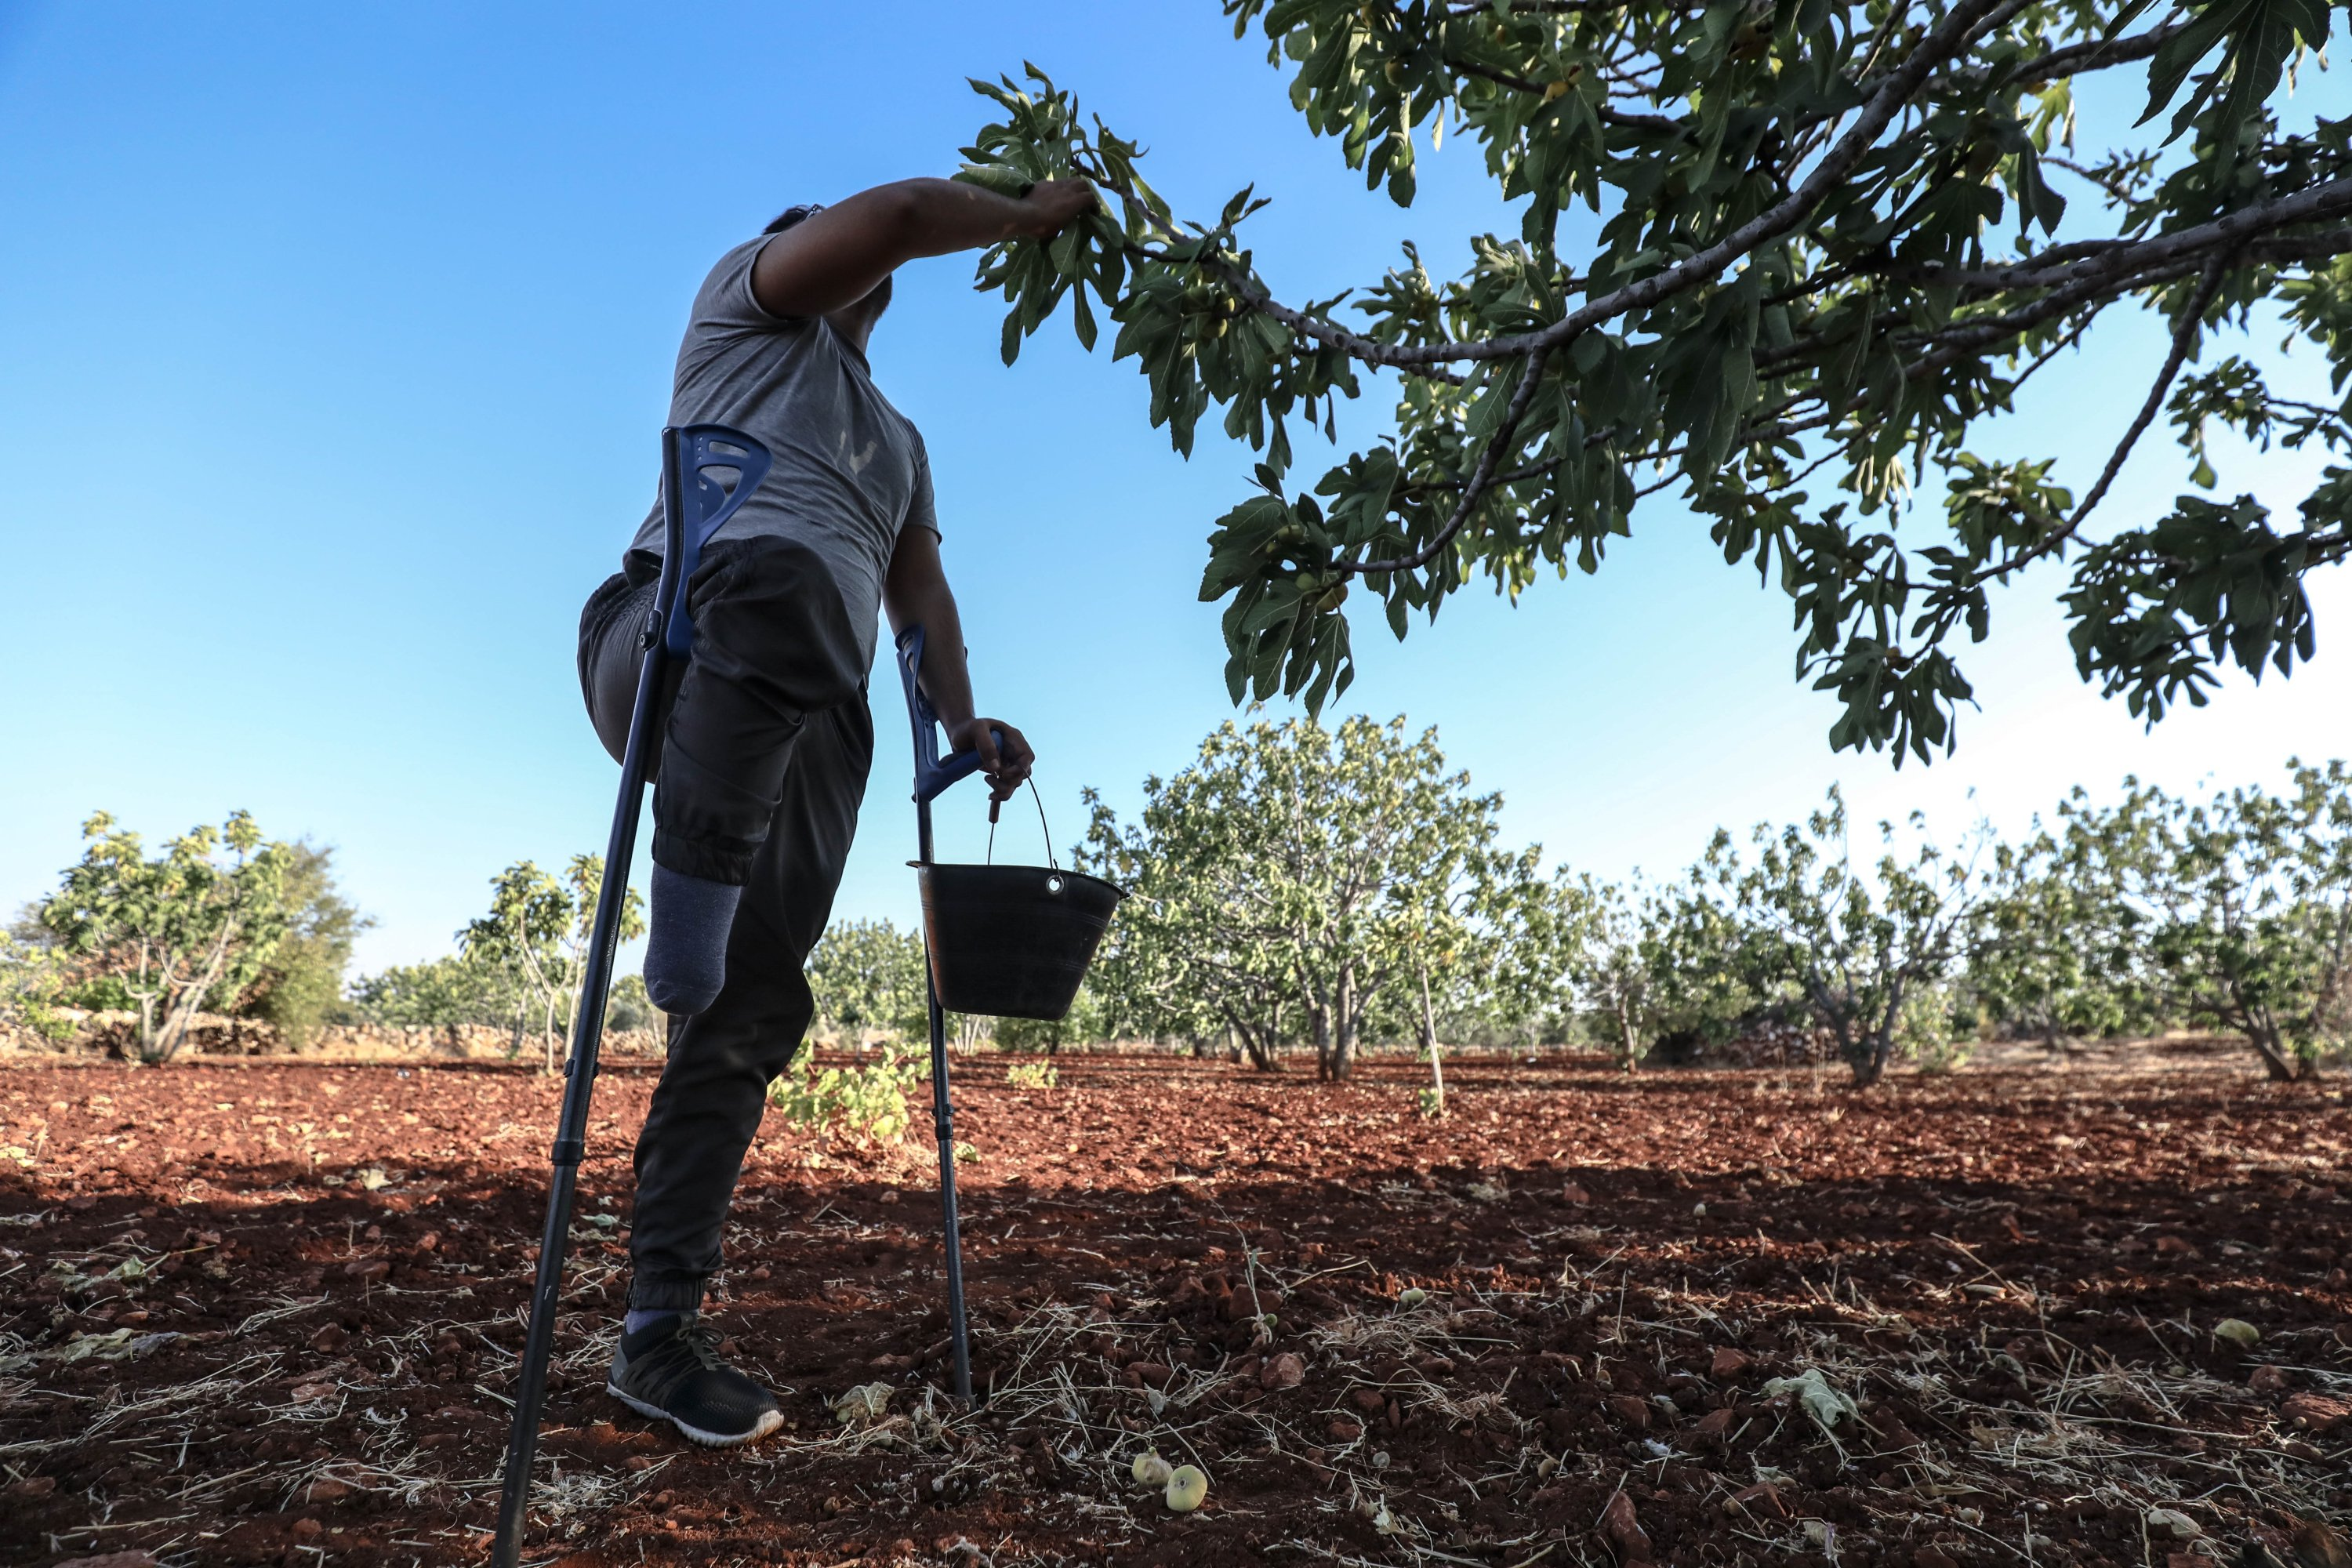 Shakir Zeytin, who lost his right foot after the explosion of a mine laid by the regime forces, harvest his figs in the Jabal al-Zawiya region of Idlib governorate, northwestern Syria, Aug. 24, 2021. (AA Photo)